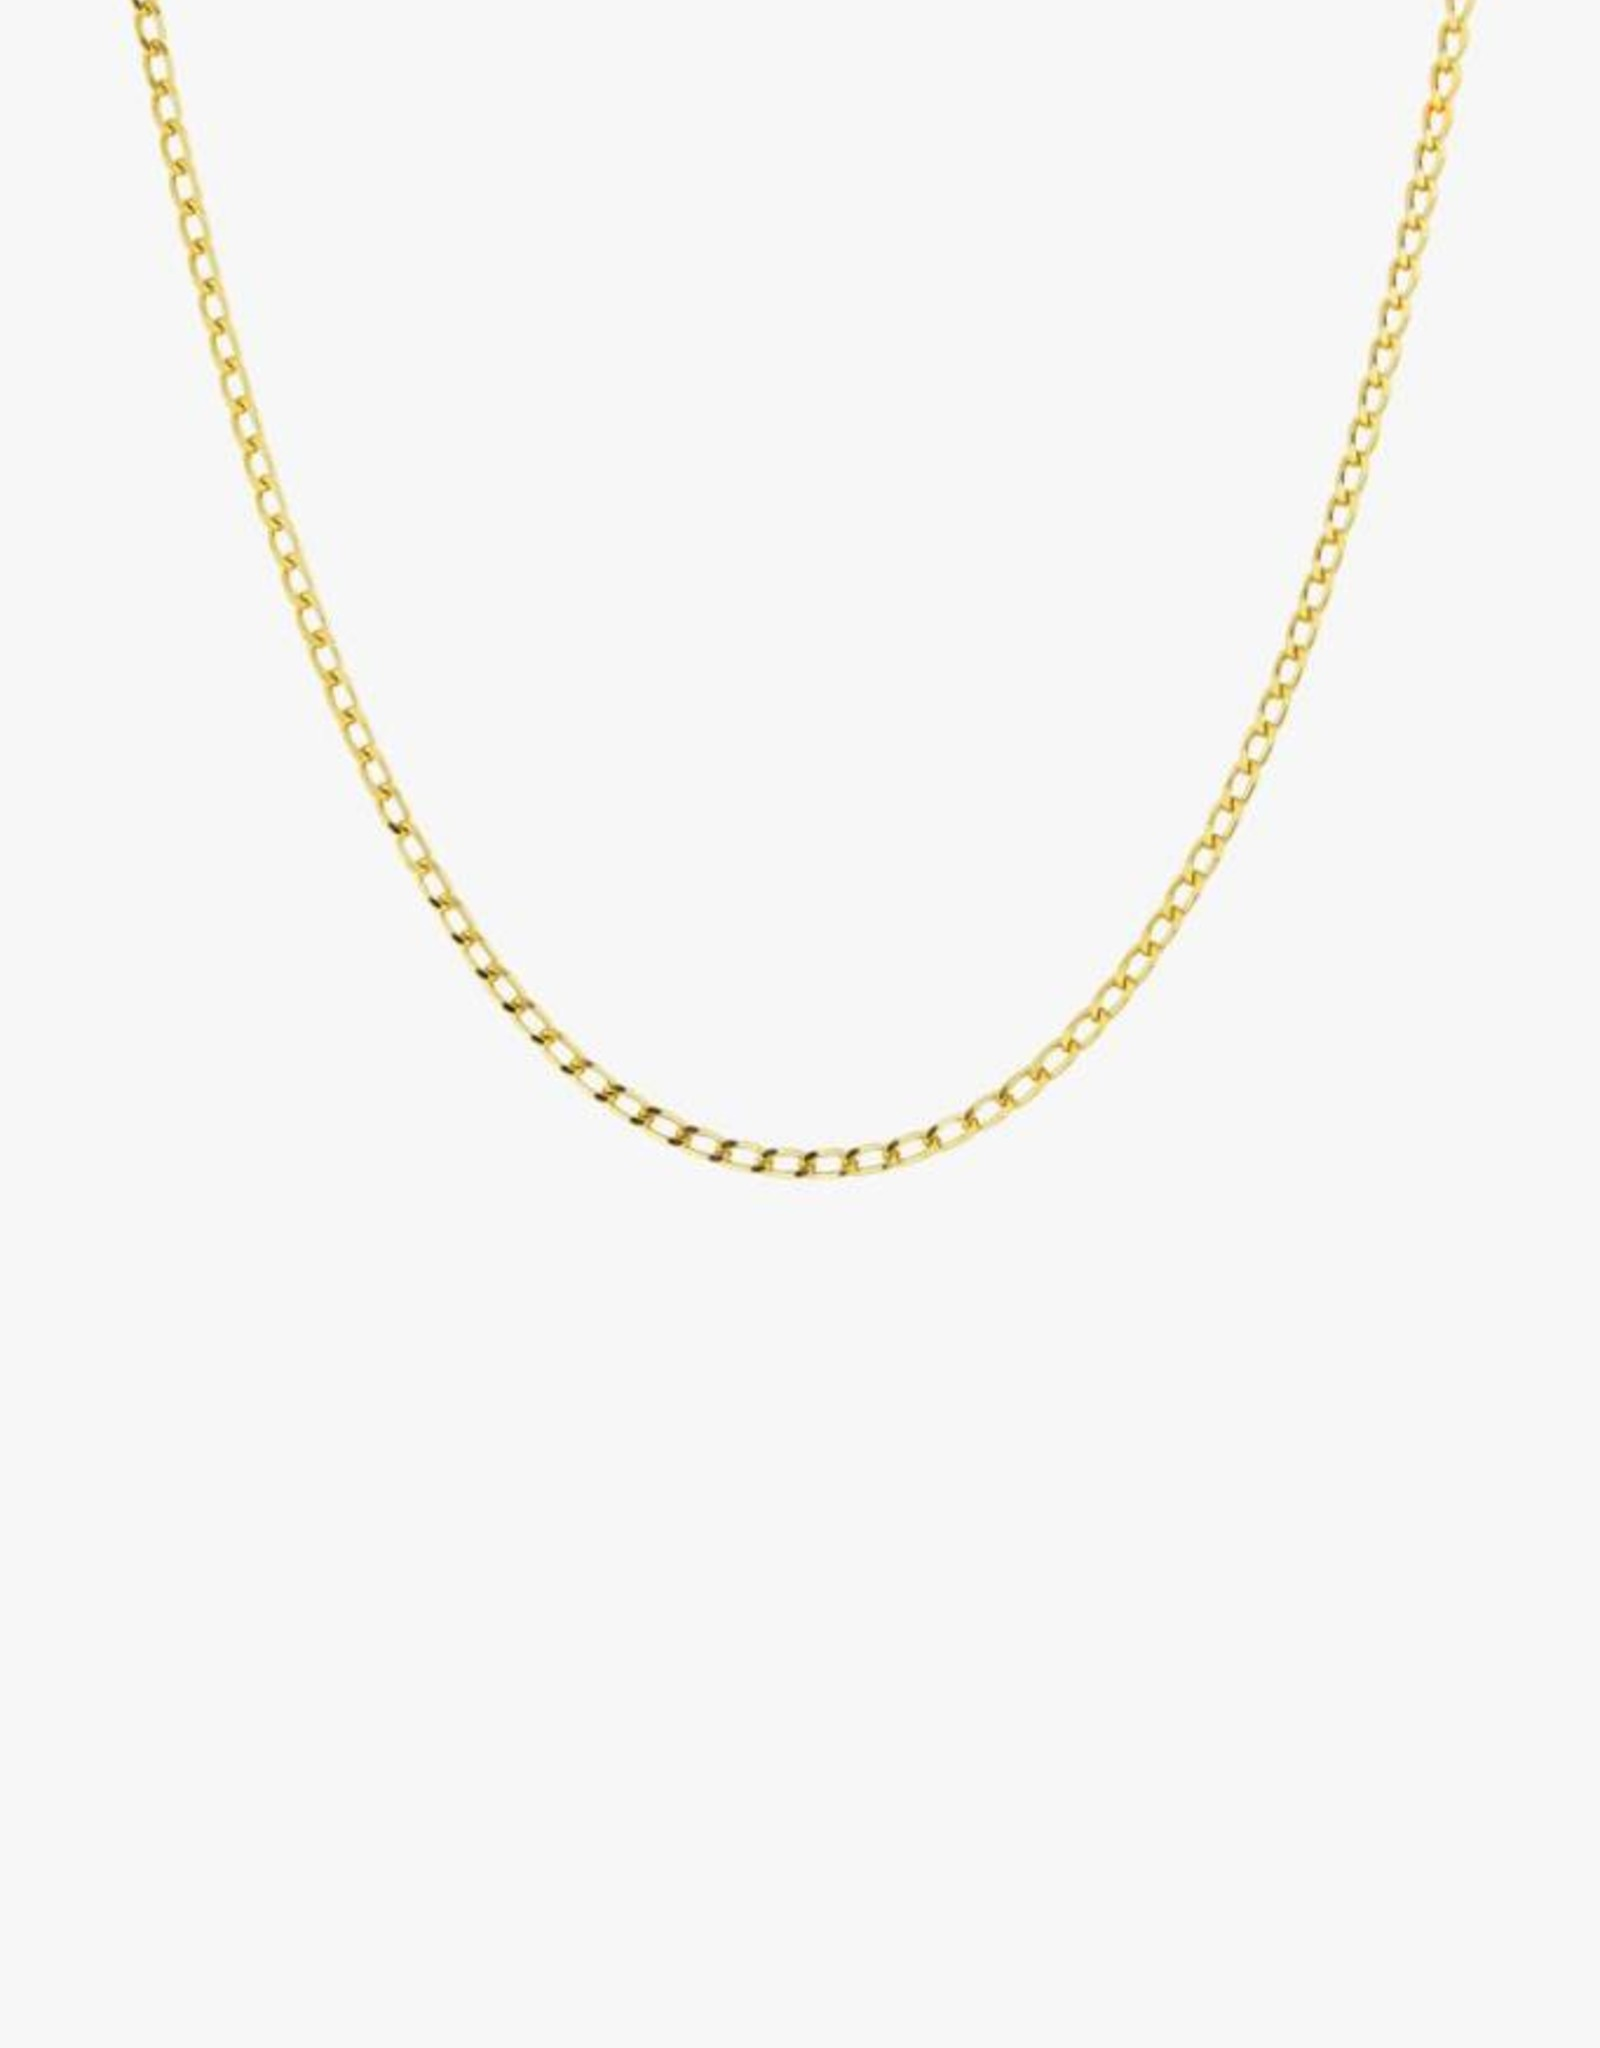 Wildthings Collectables Medium oval gold necklace